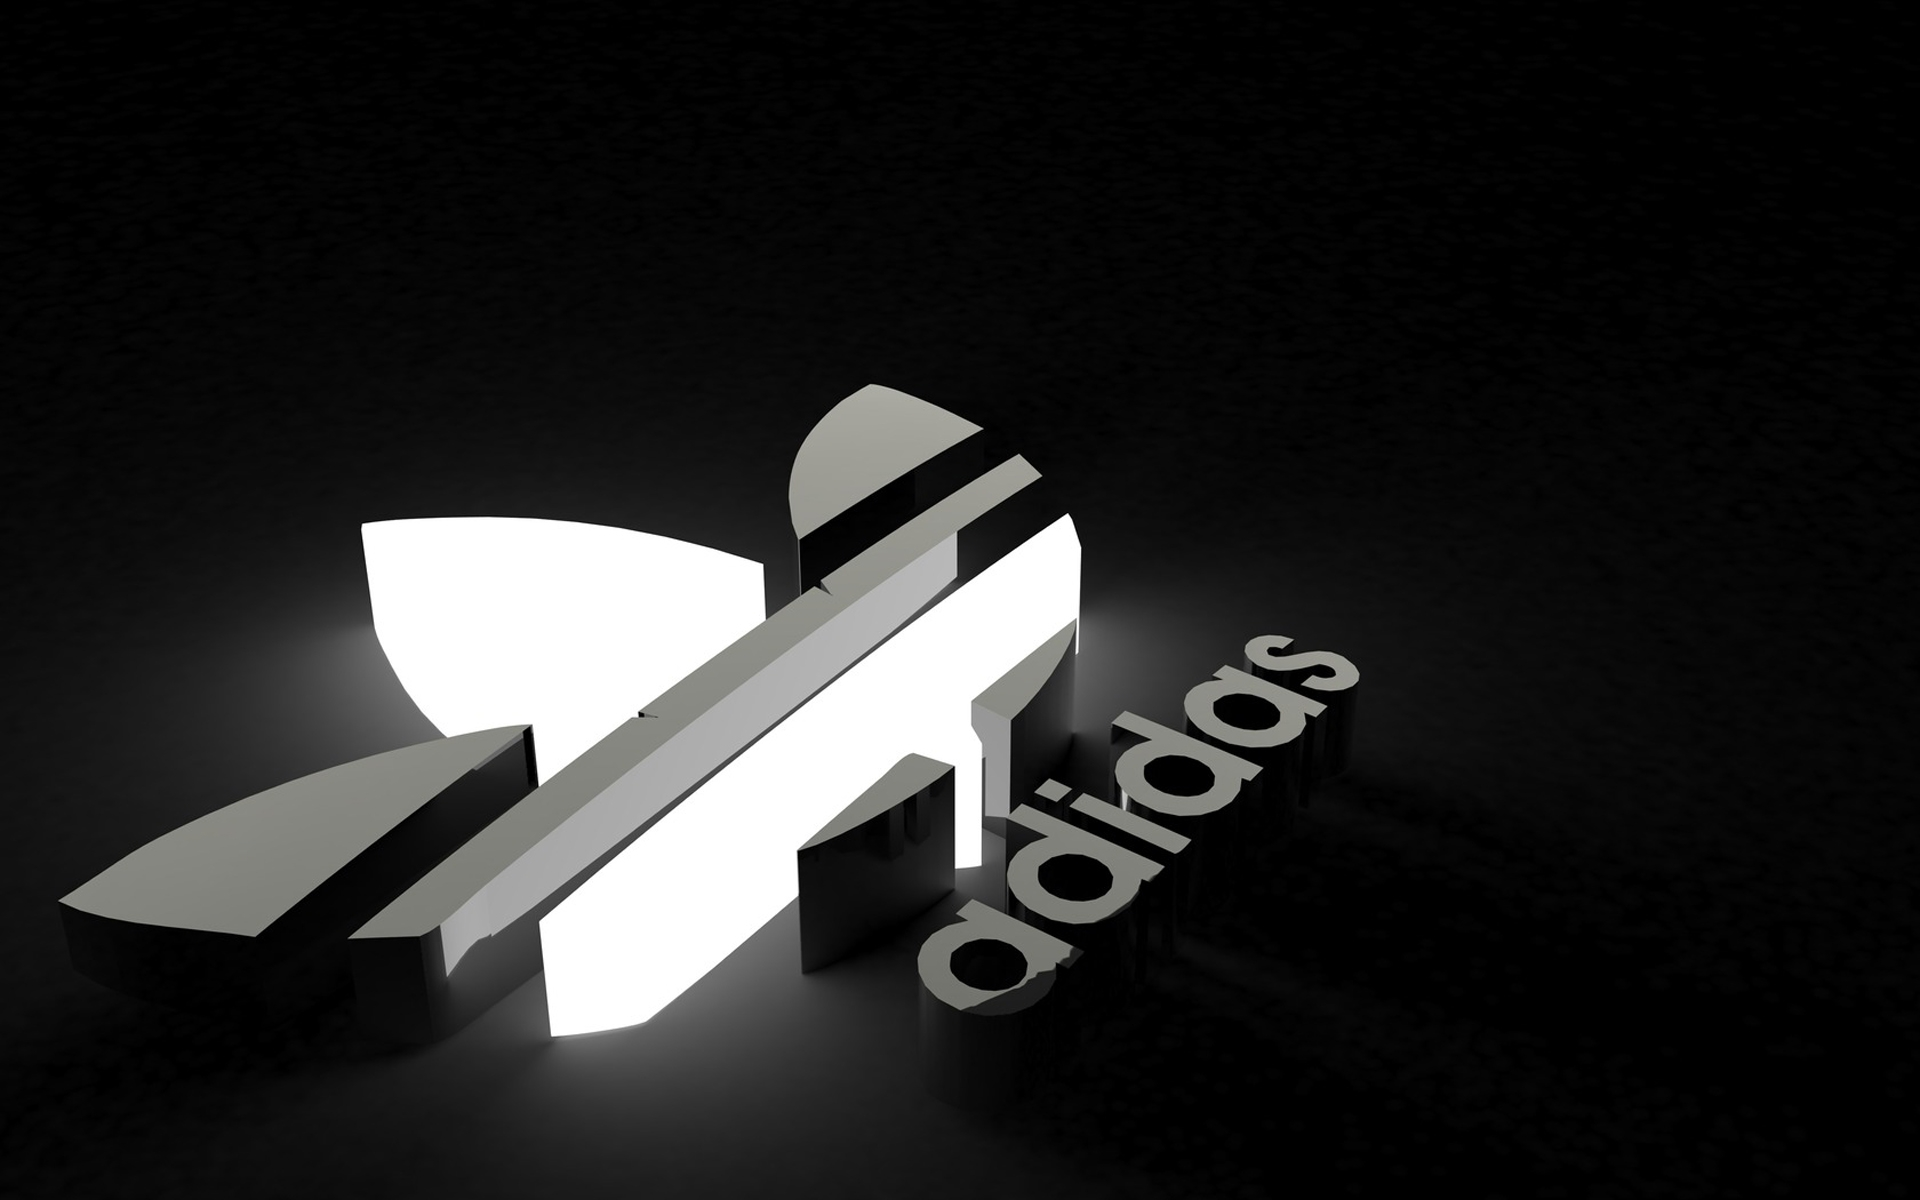 3d adidas logo wallpaper 8911